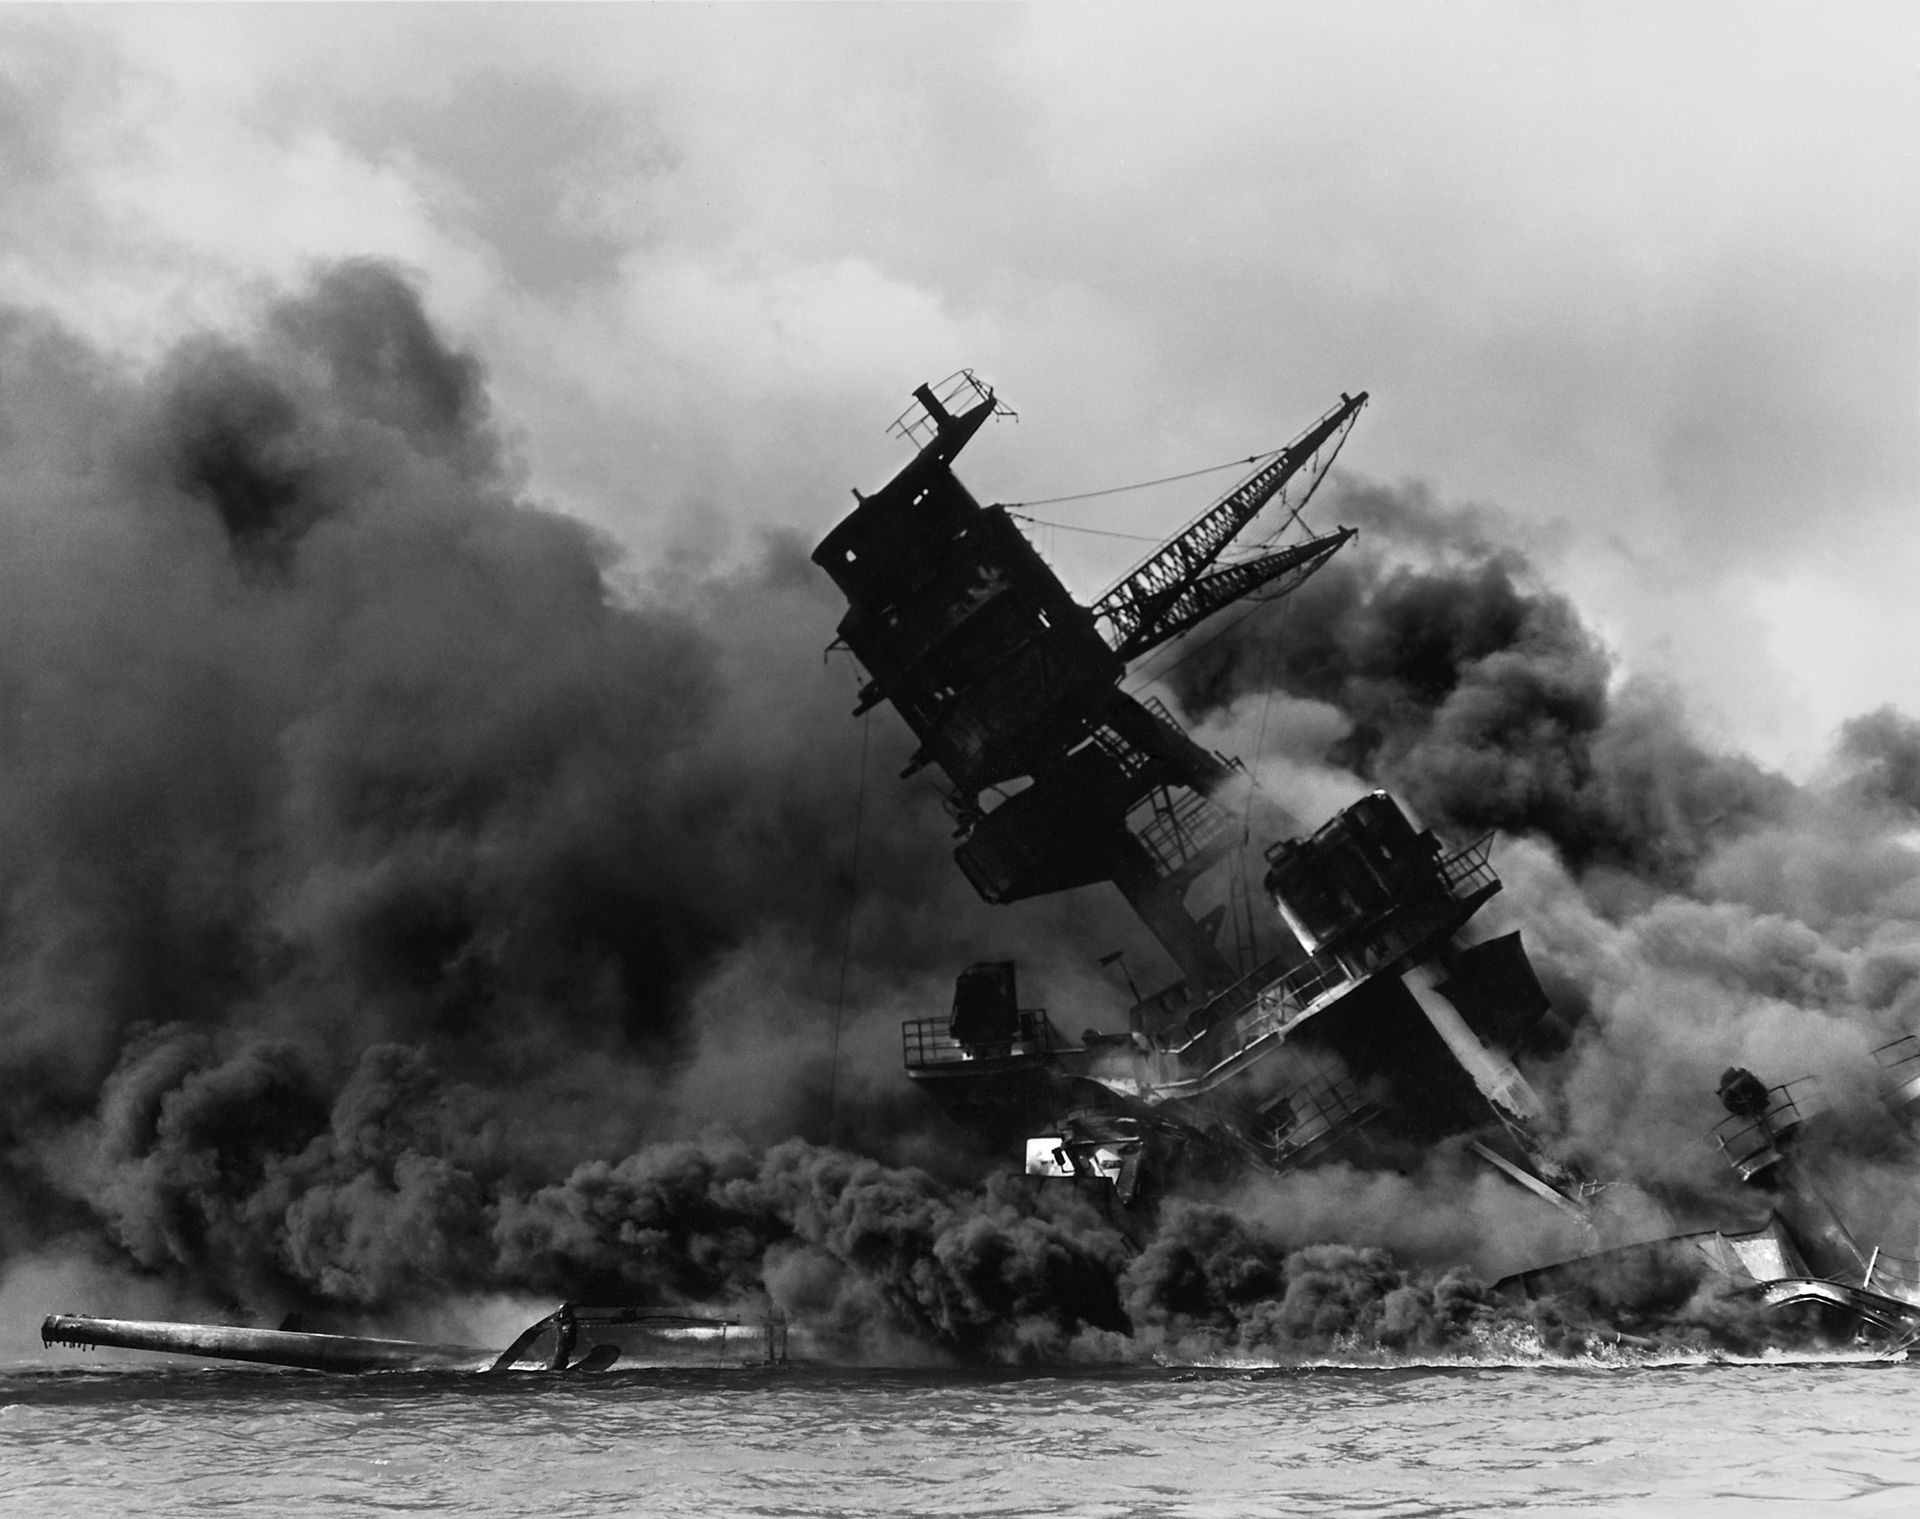 Raise a glass to the heroes who died at Pearl Harbor, December 7th, 1941